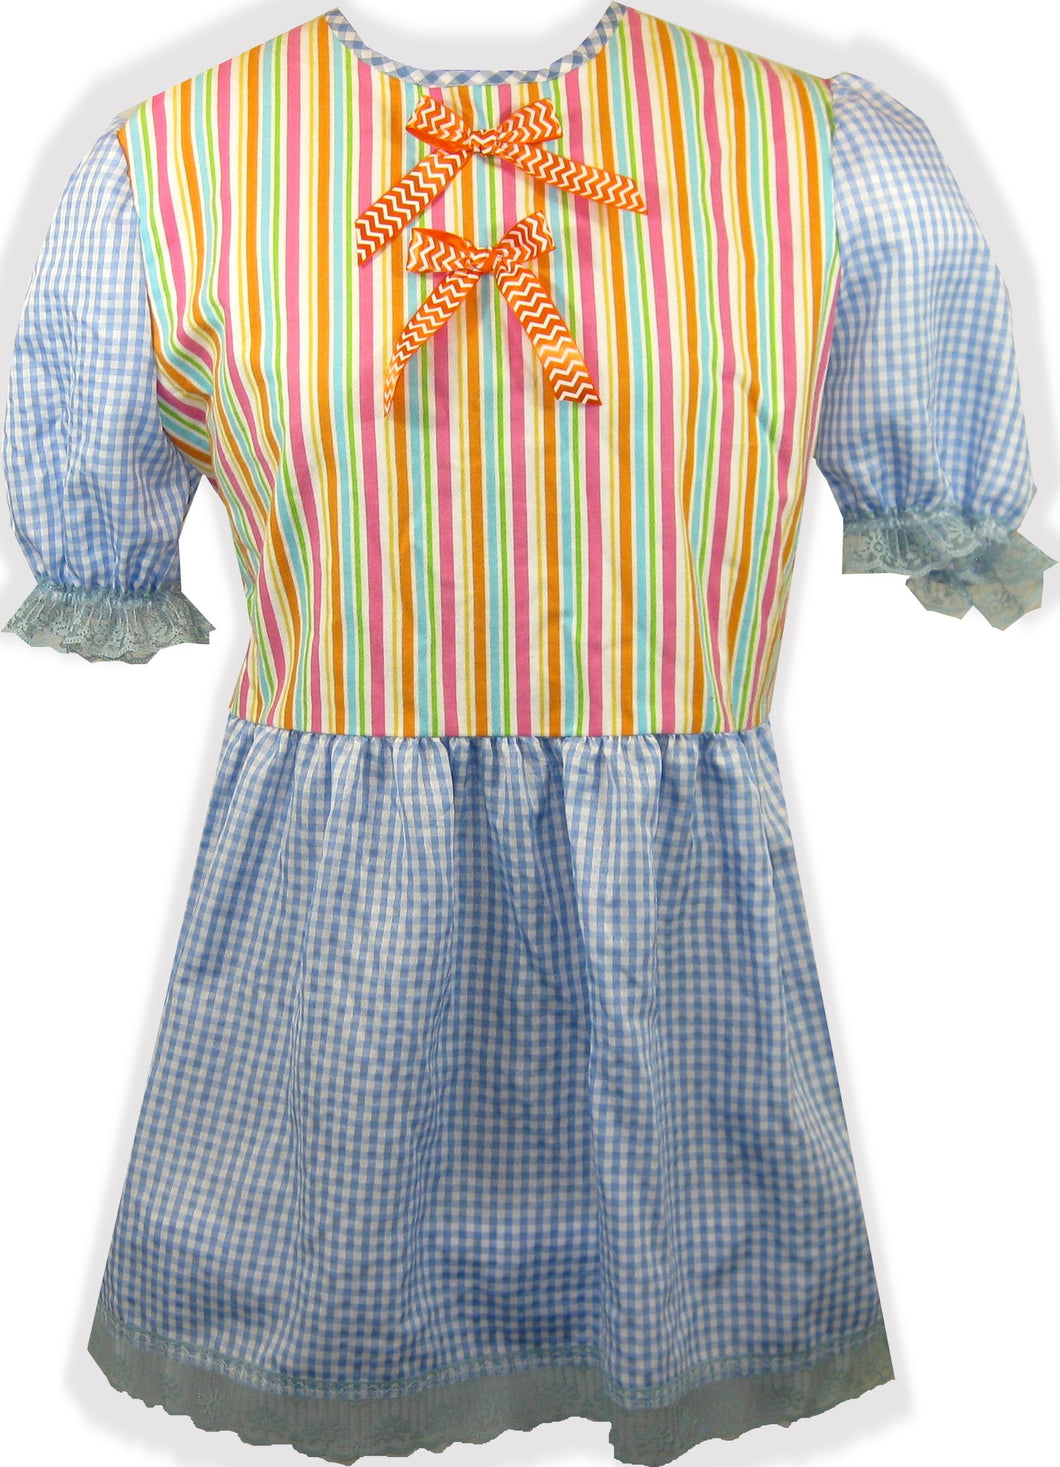 Ready 2 Wear | Blue gingham and bows Adult Sissy Dress LEANNE